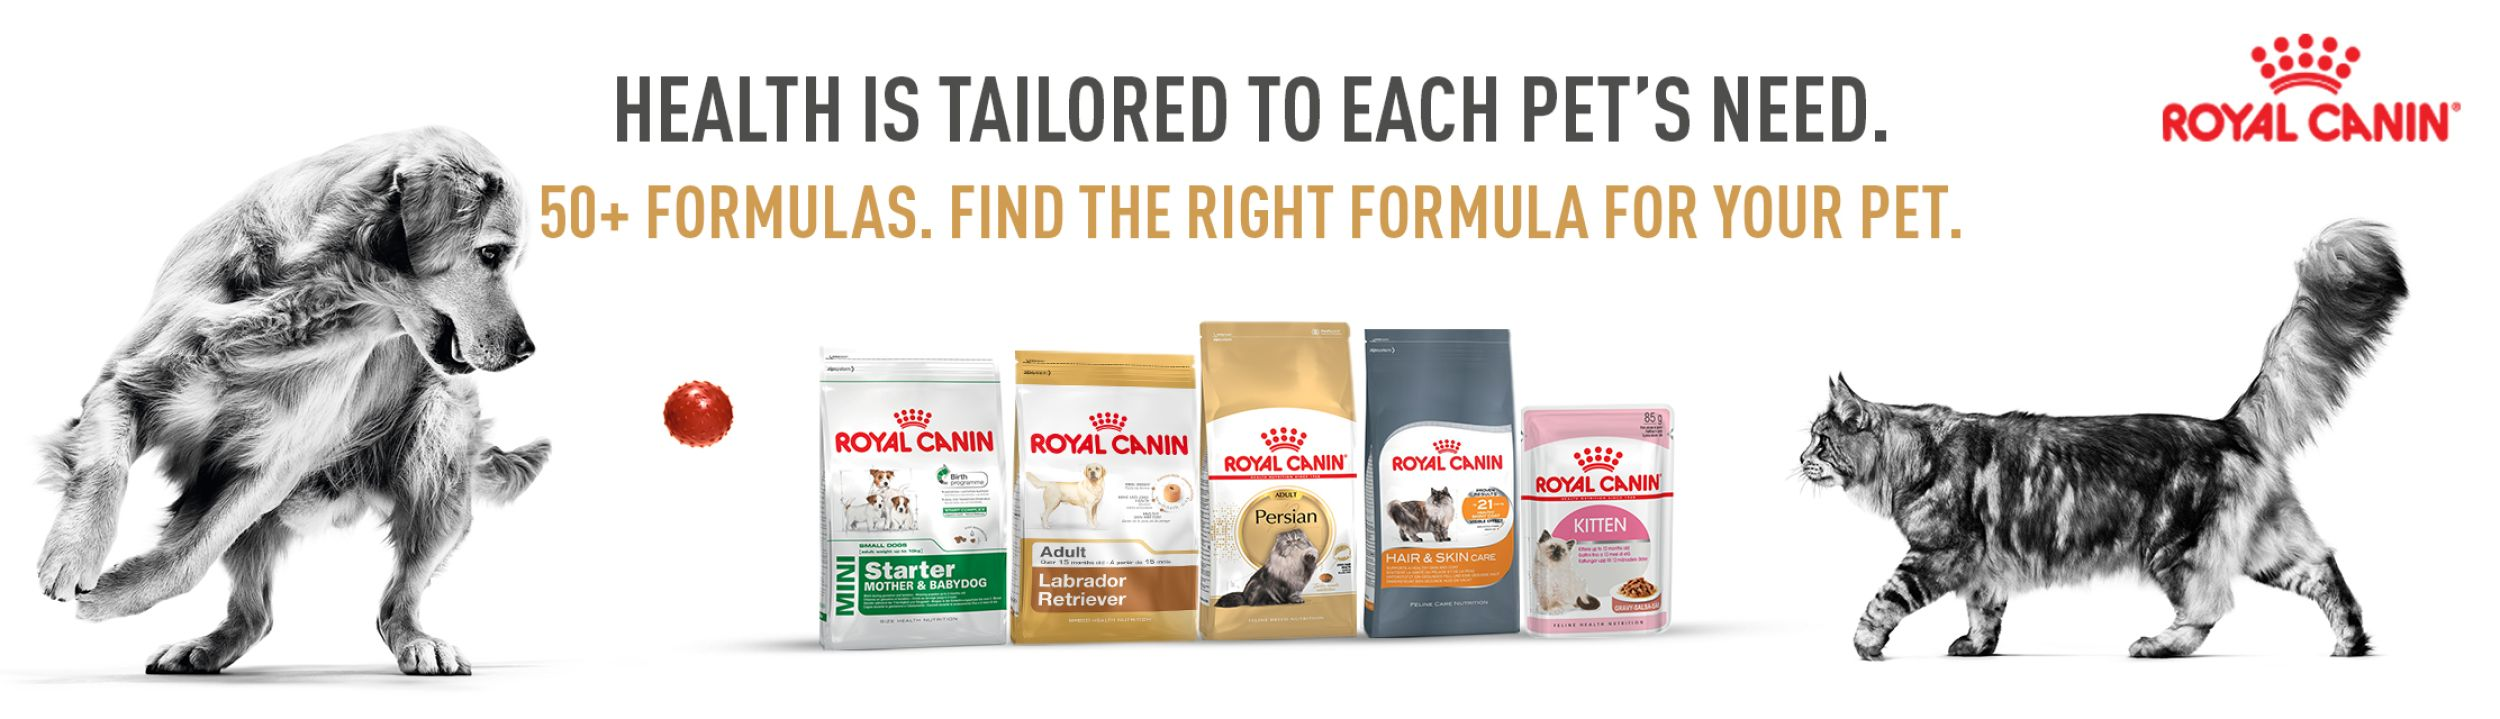 Royal Canin Persian Adult 1kg Pet Day Special Offers On Food And Supplies Online At Best Price In India